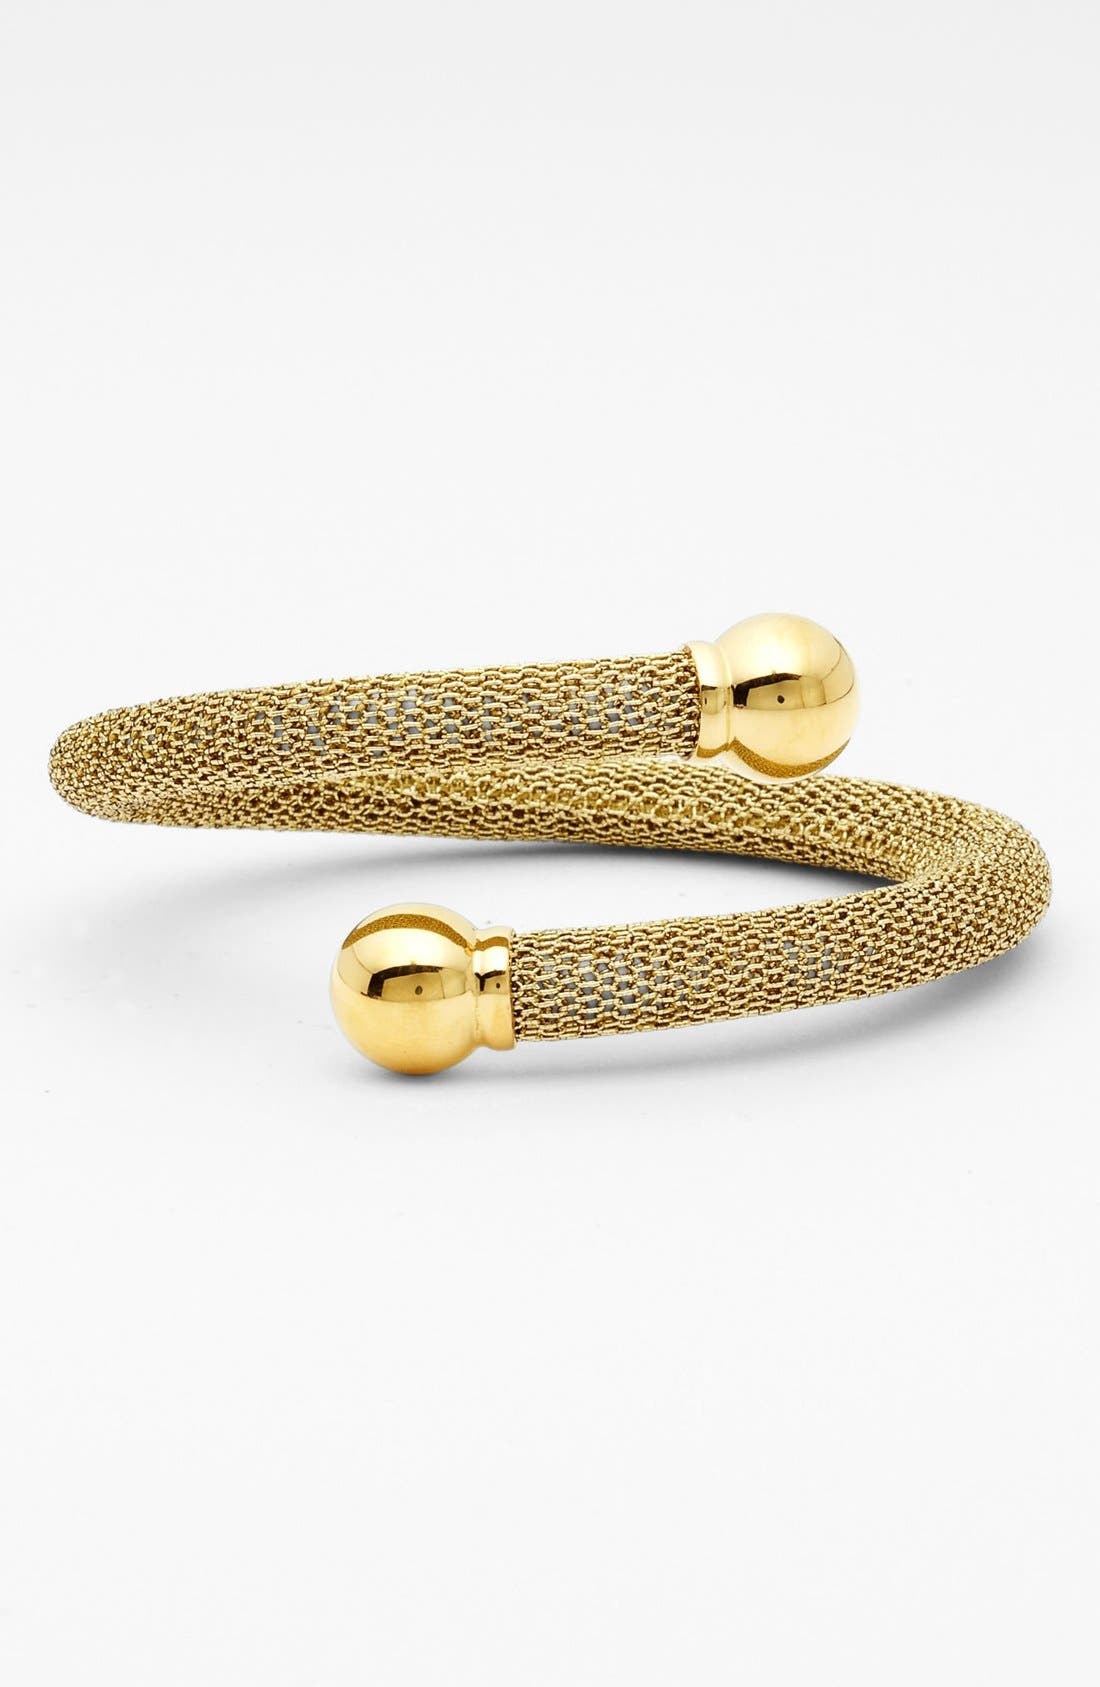 Alternate Image 1 Selected - Adami & Martucci 'Mesh' Coil Bracelet (Nordstrom Exclusive)